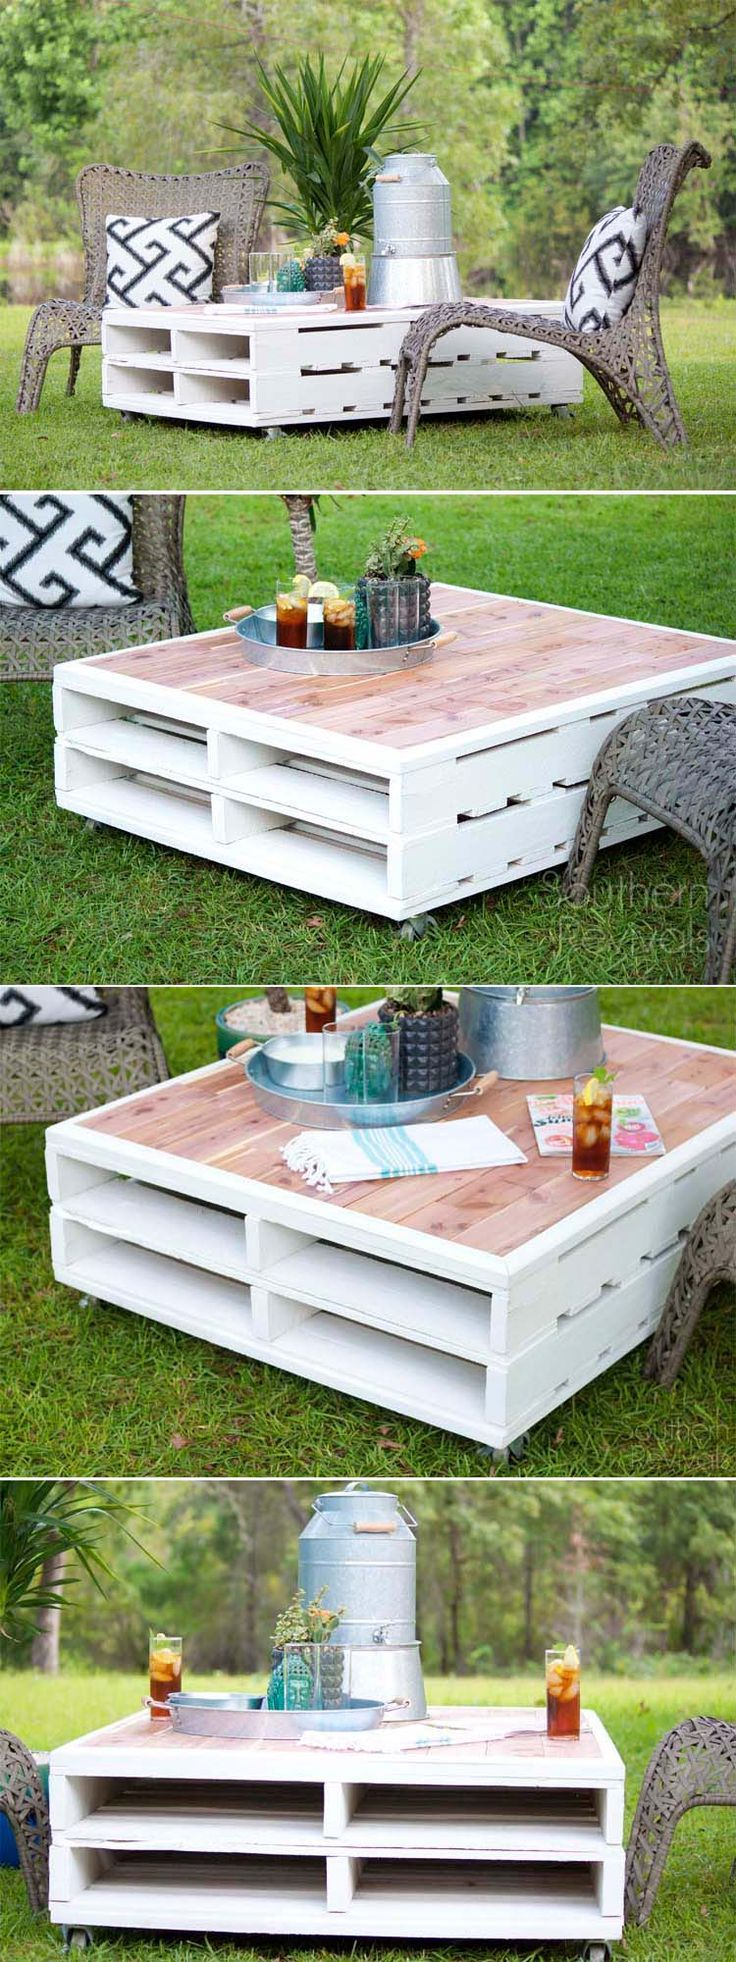 Diy Pallet Coffee Table Gets An Outdoor Makeover Diy